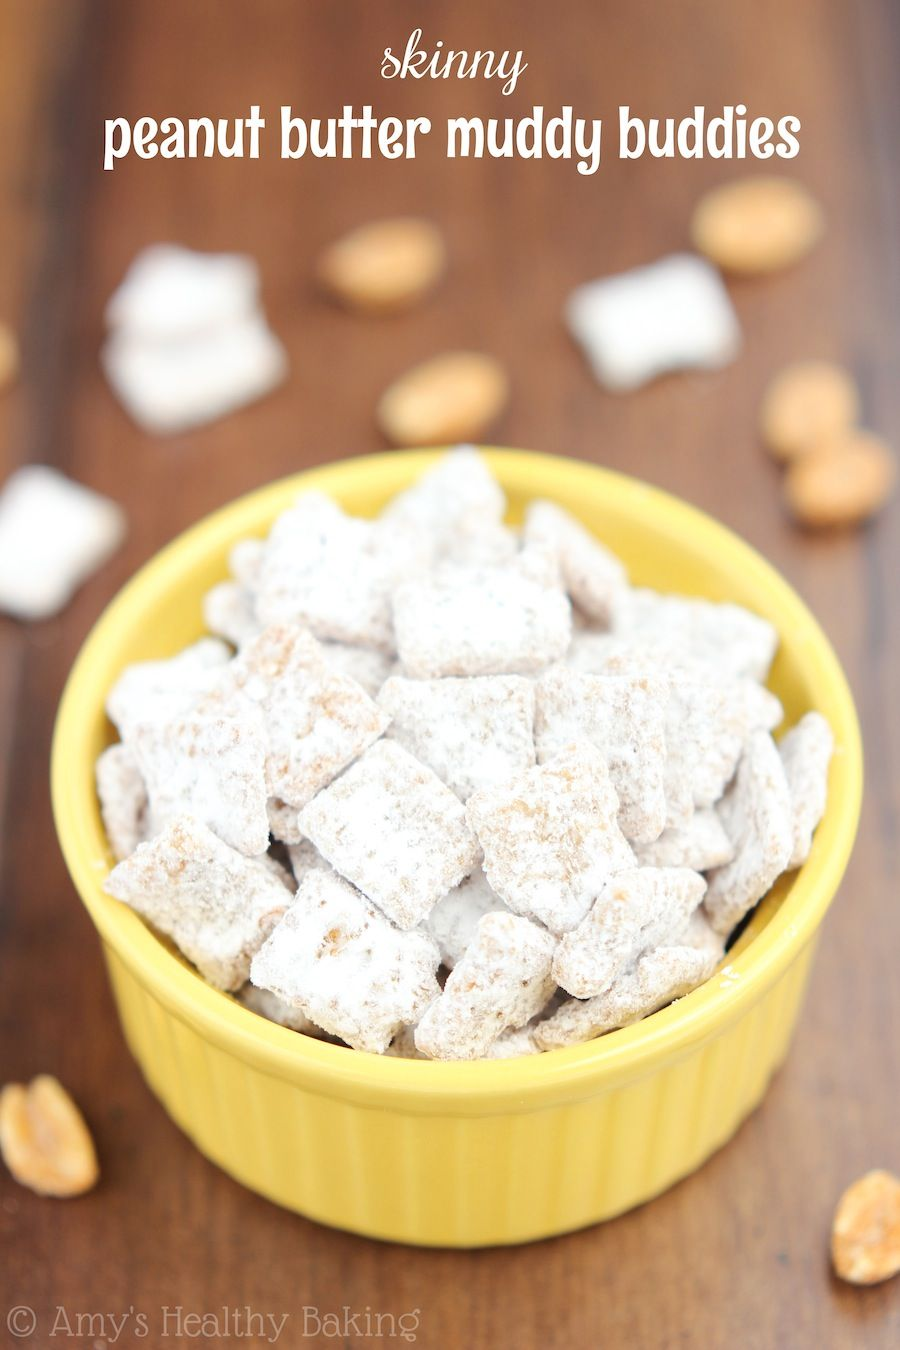 Skinny Peanut Butter Muddy Buddies -- sweet, crunchy & with 50% less fat & calories than the original recipe!